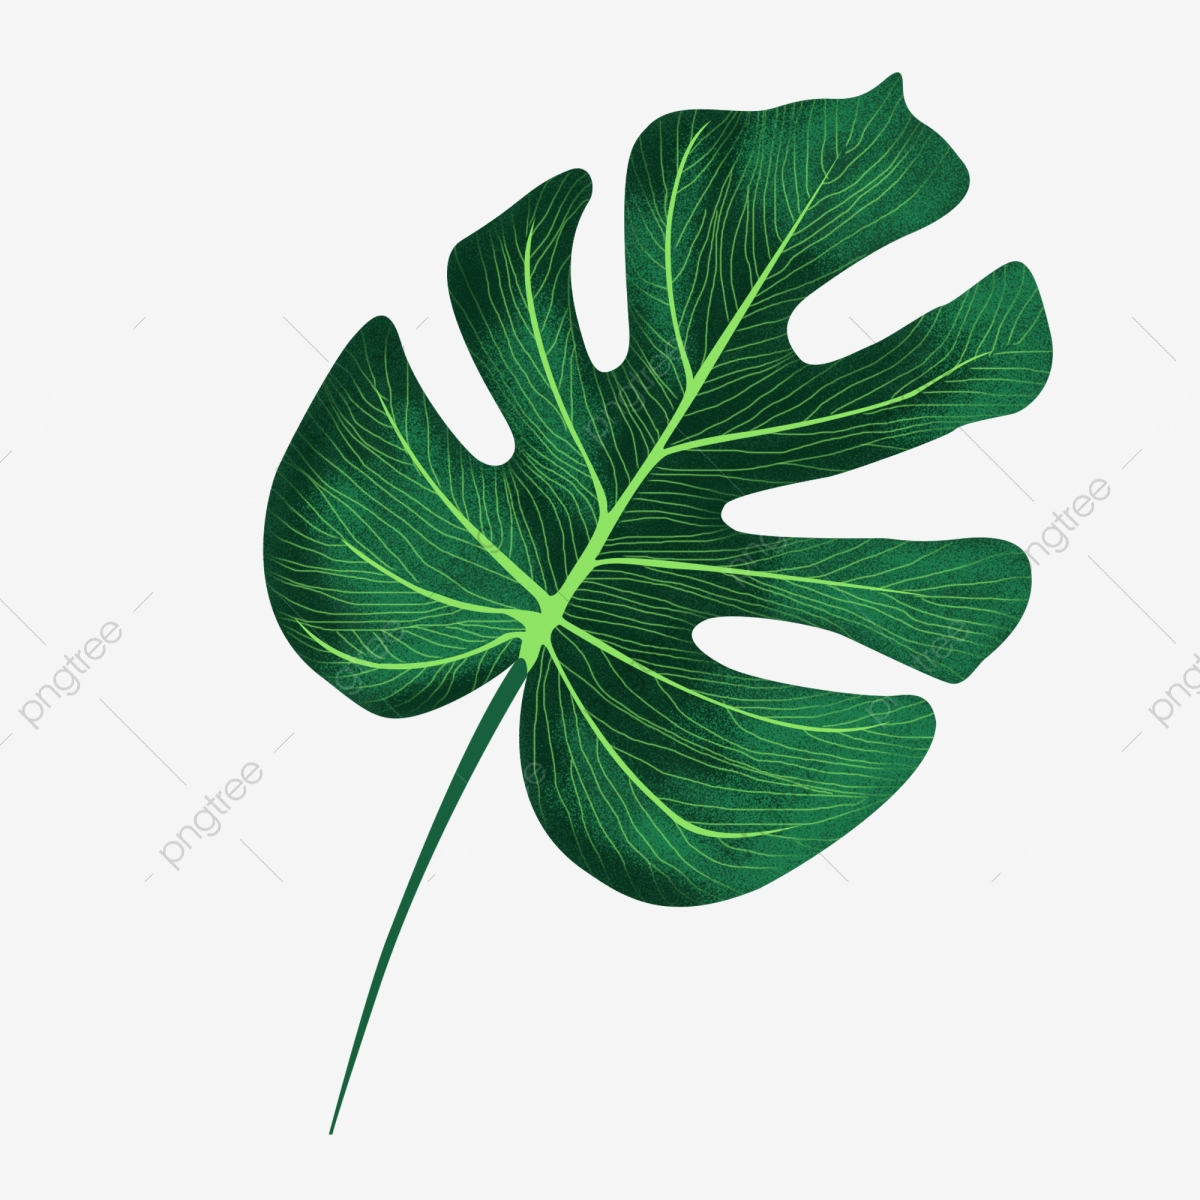 pngtree hand painted noise green leaf element monstera leaf decoration pattern with png image 4054582